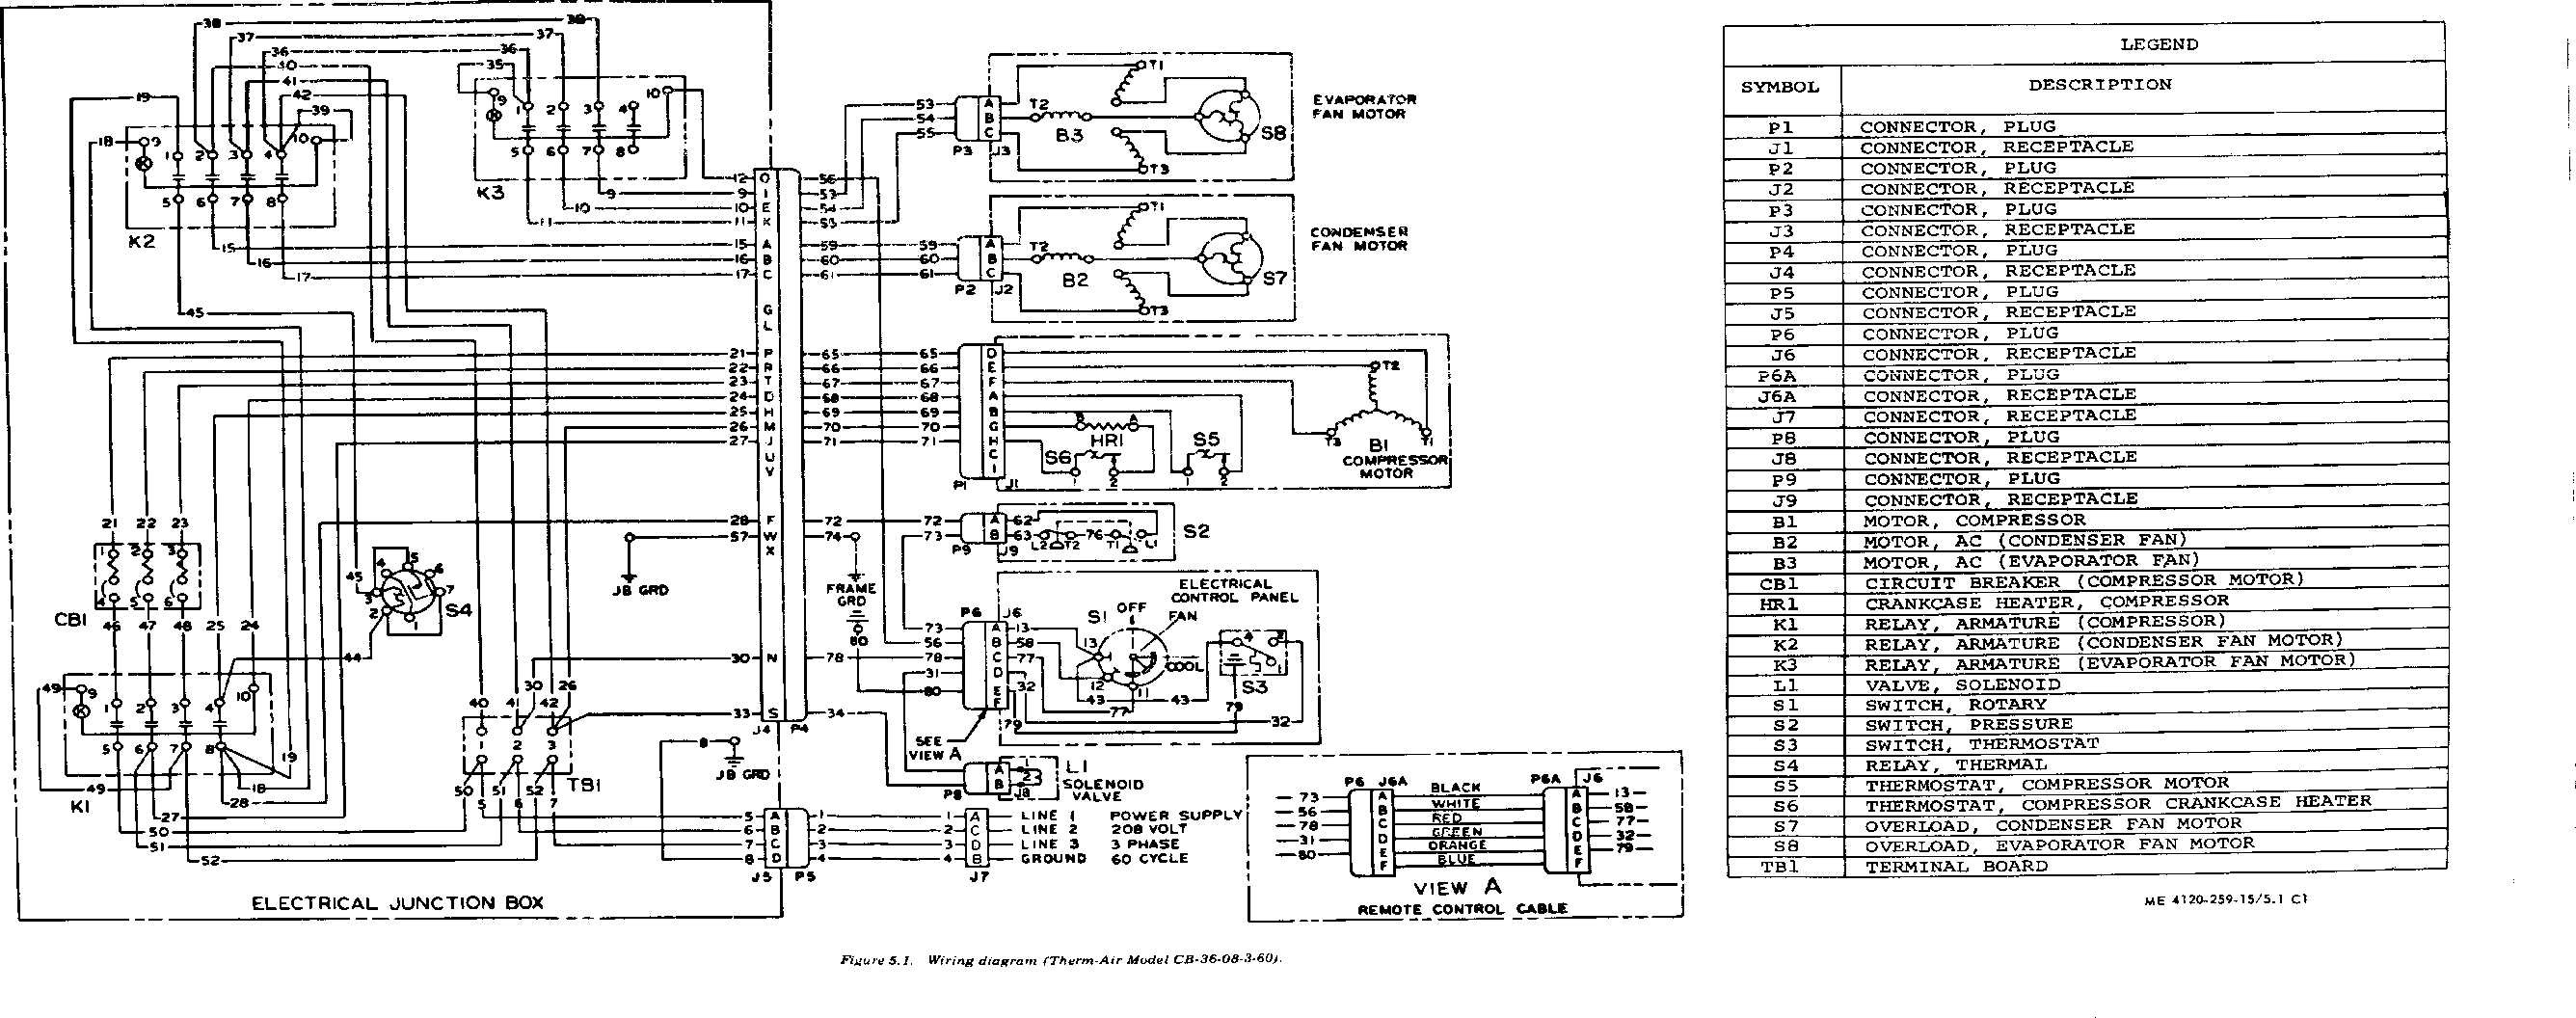 trane package unit wiring diagram Collection-Trane Wiring Diagrams Best Wiring Diagram Payne Ac Unit Best Trane Wiring Diagrams Hvac Trane Wiring Diagrams At Trane Wiring Diagram 1-e